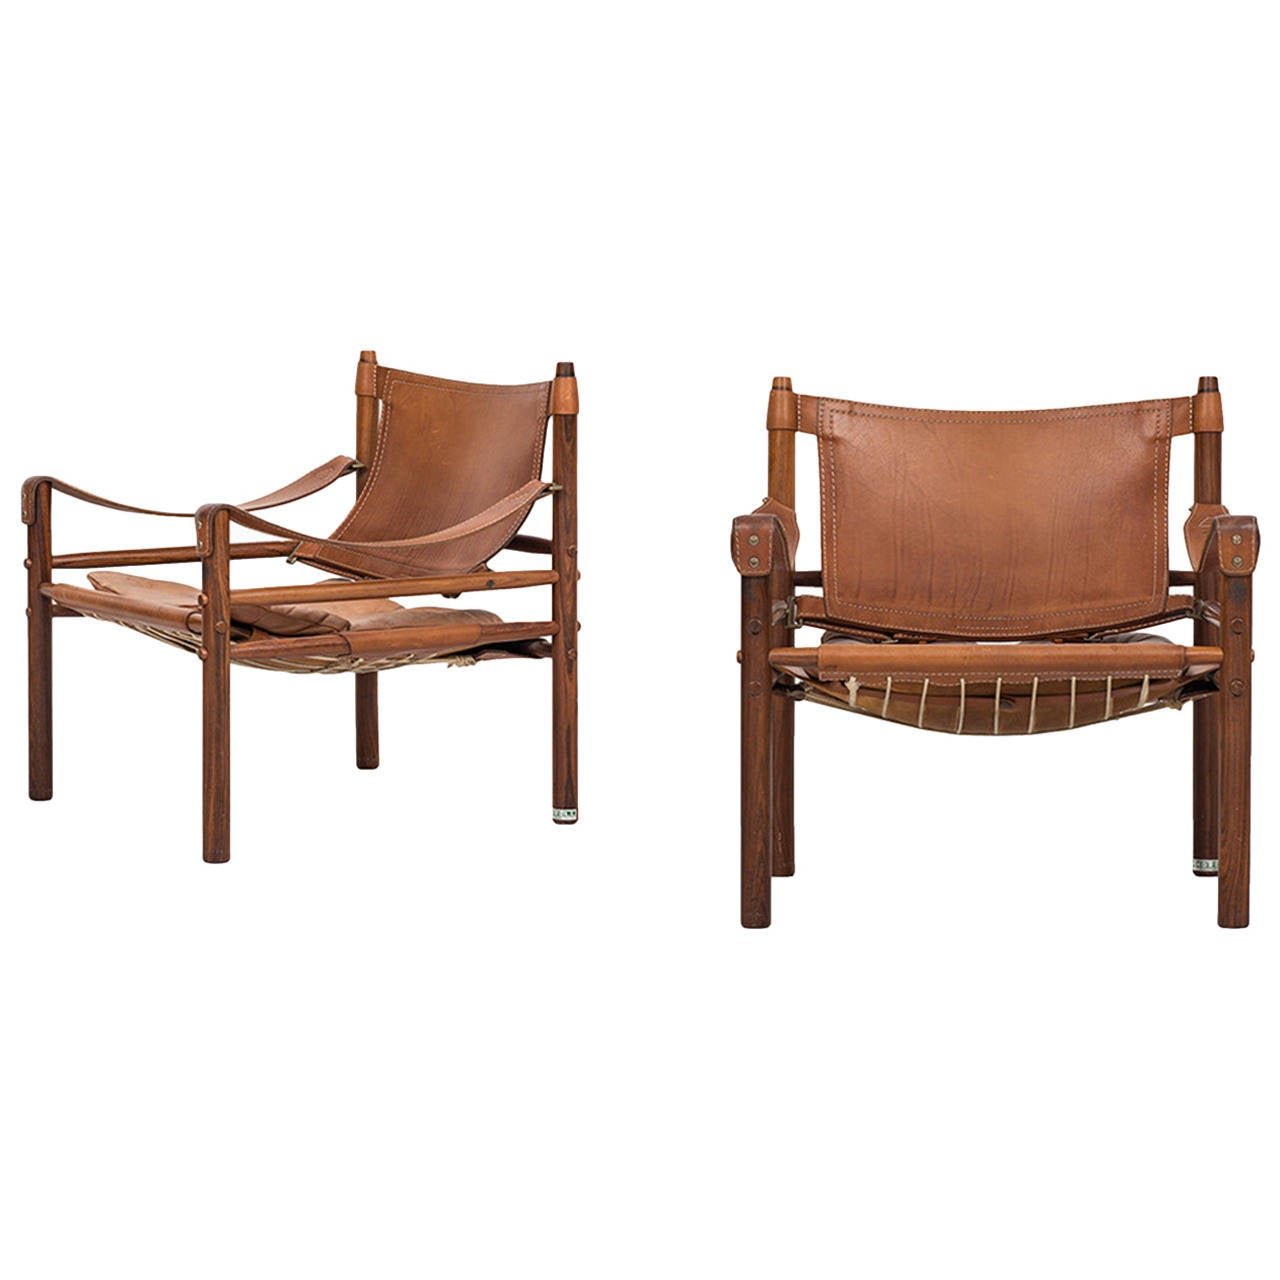 Arne Norell Sirocco Easy Chairs in Rosewood by Arne Norell AB in Sweden For Sale